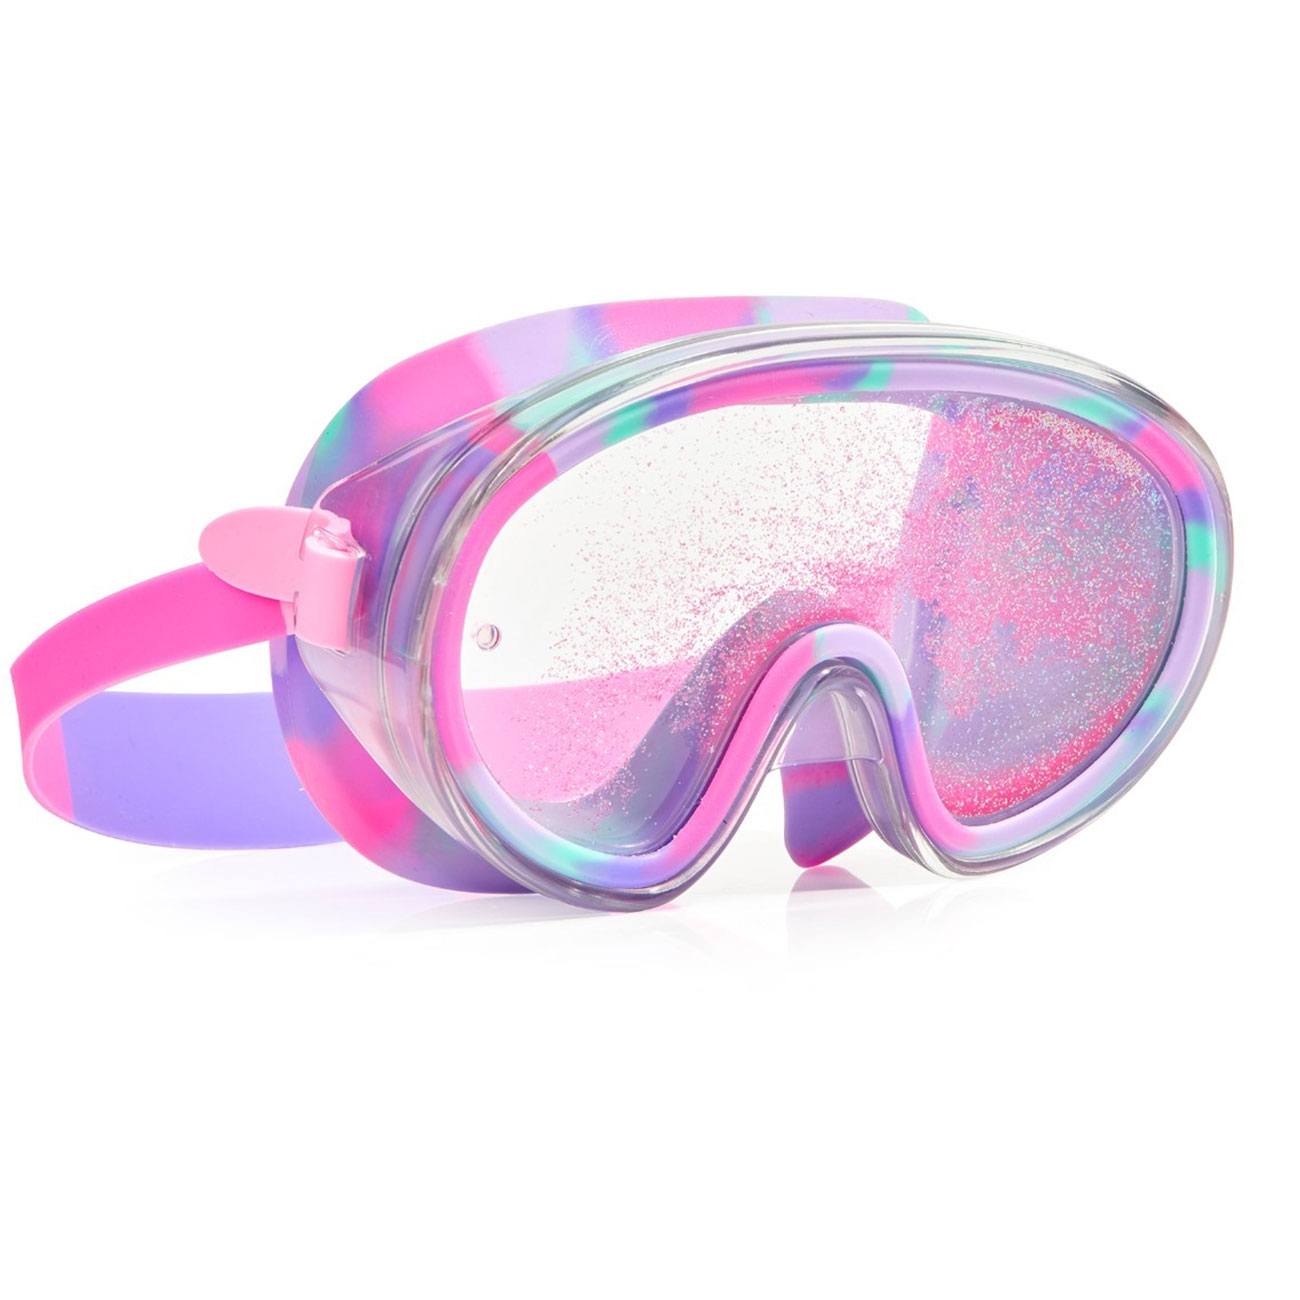 bling20-dykkerbriller-swimgoggles-svoemmemaske-swim-mask-glimmerdroem-gltter-dream-602934-1